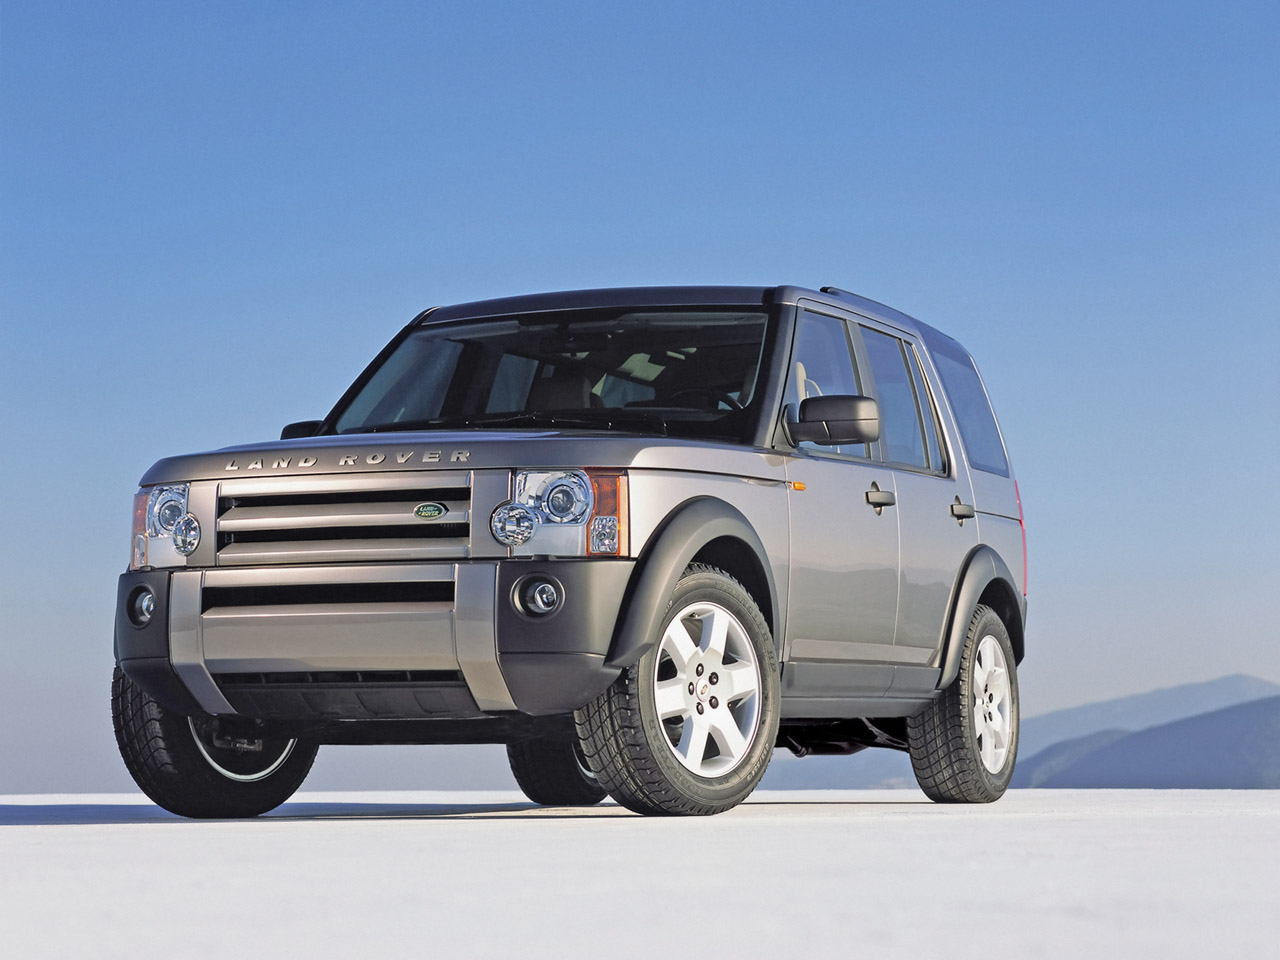 Land-Rover Discovery image #4